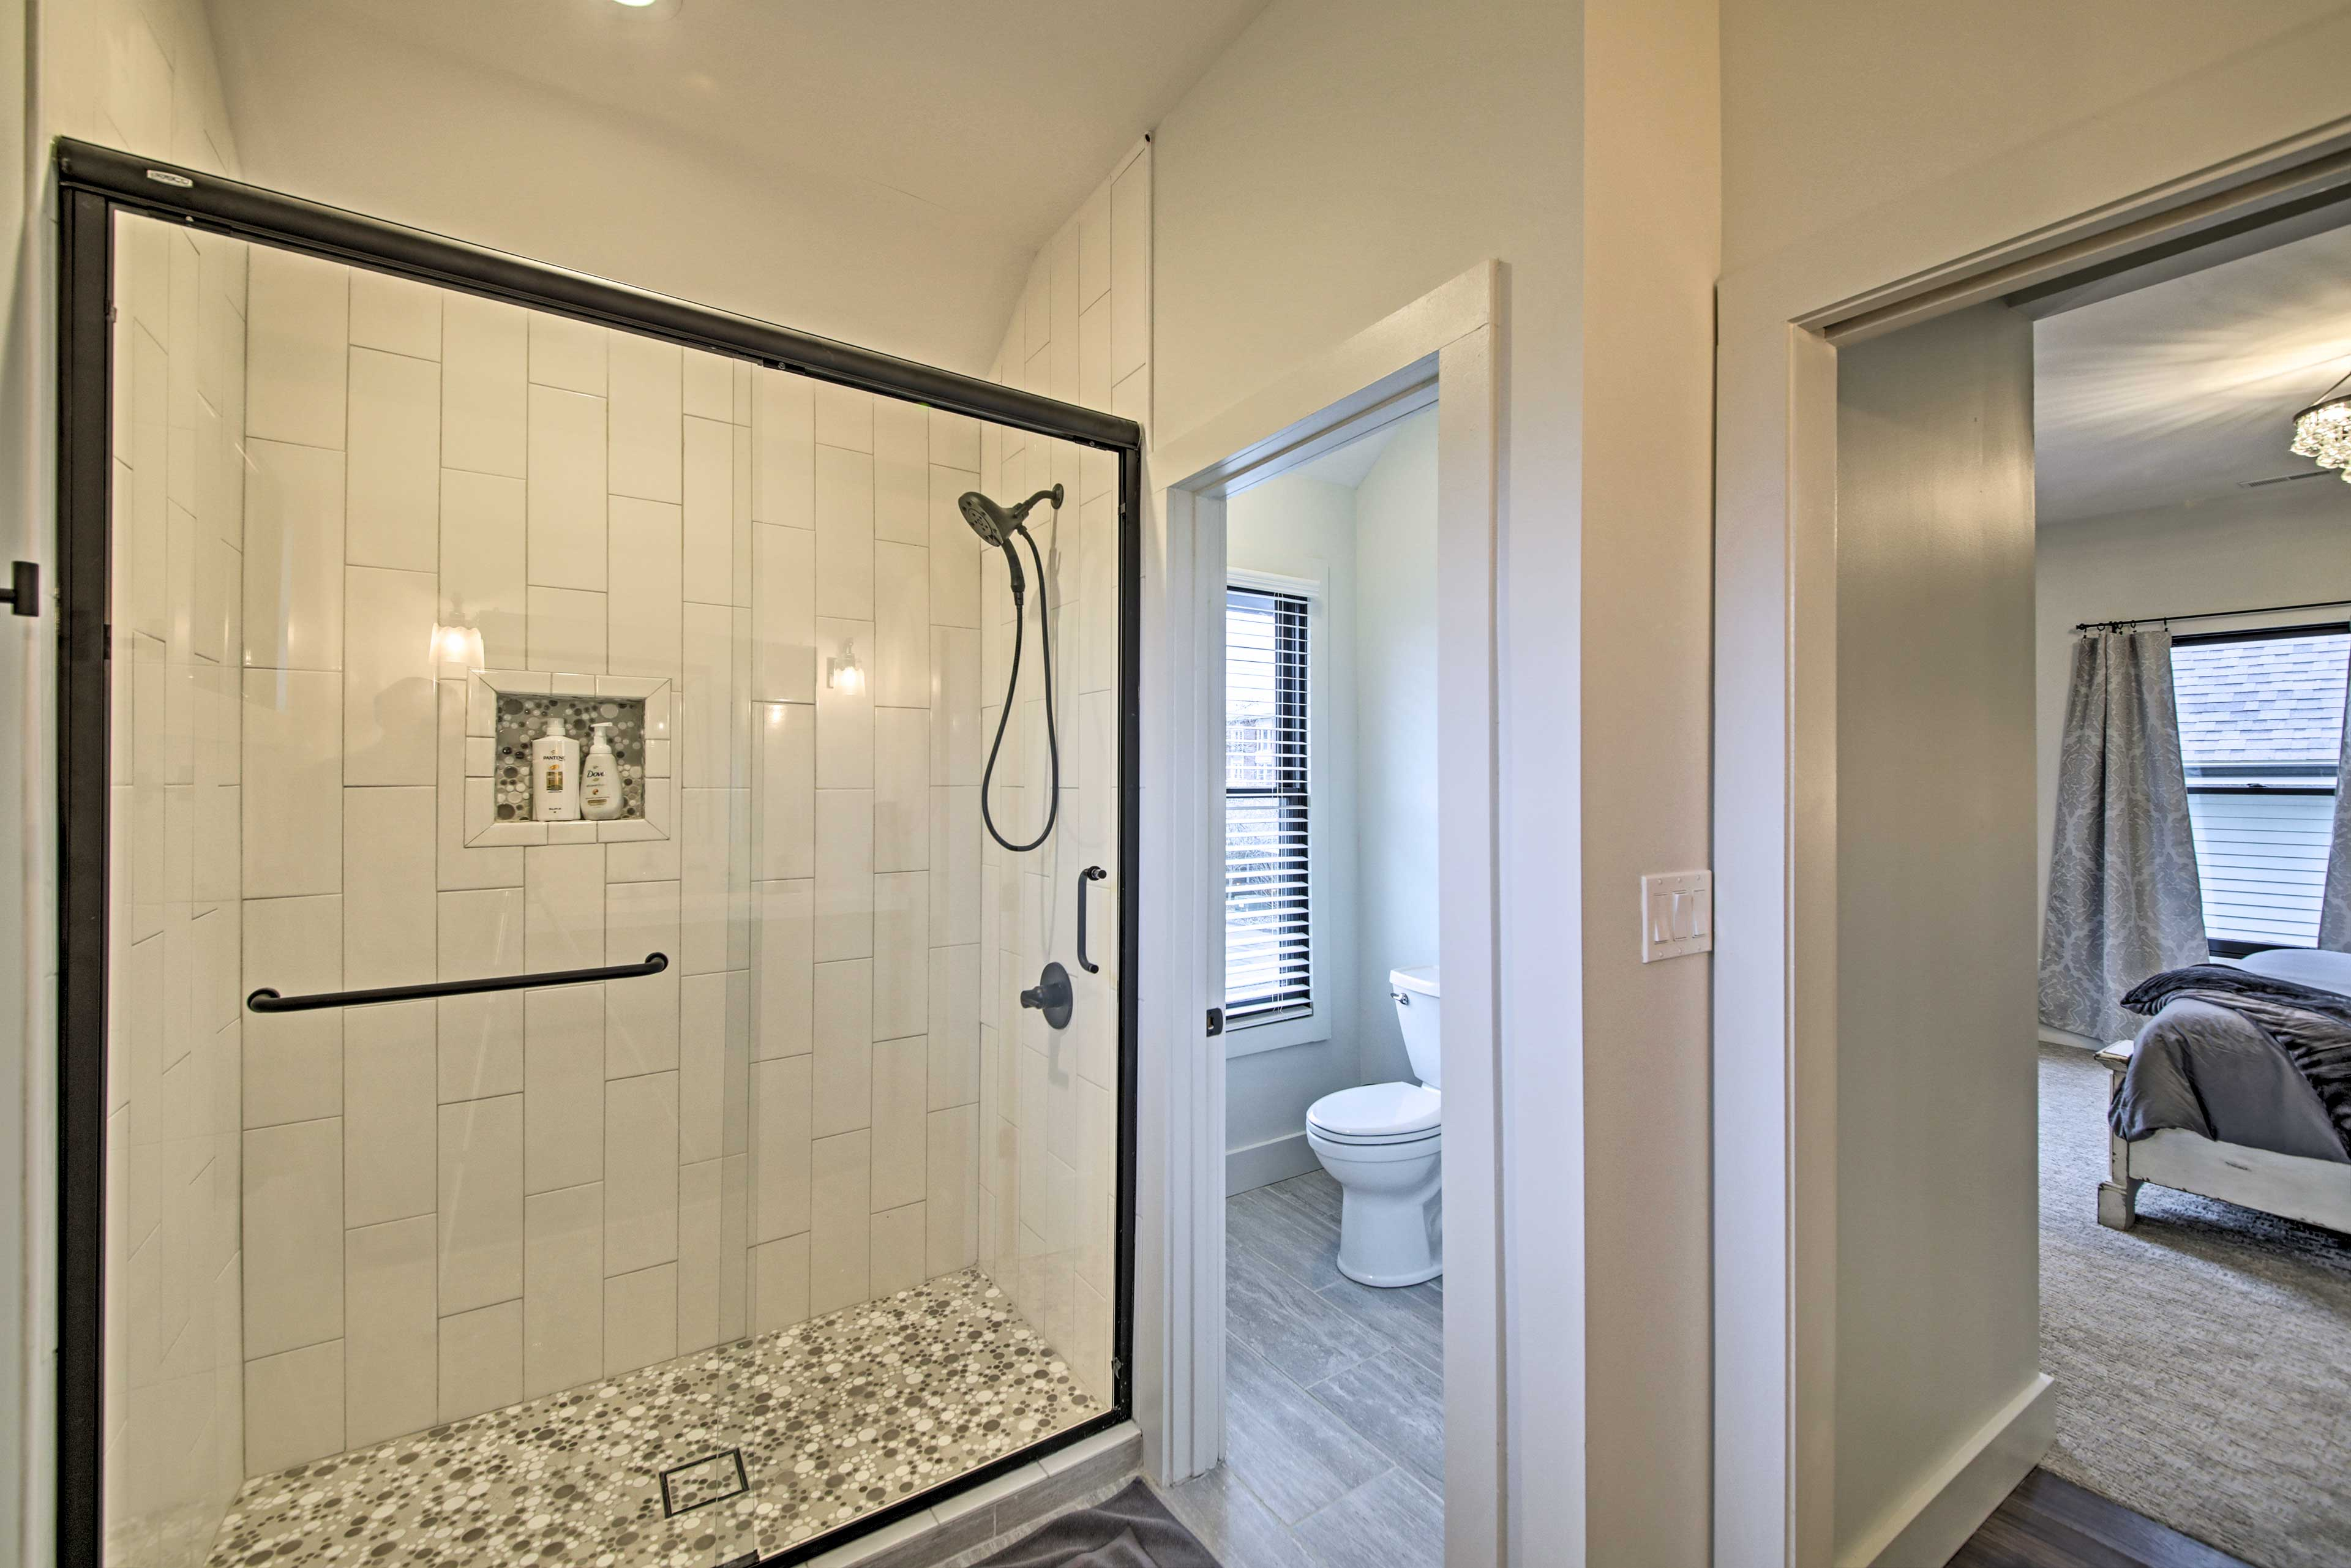 Rinse off in this tile shower.